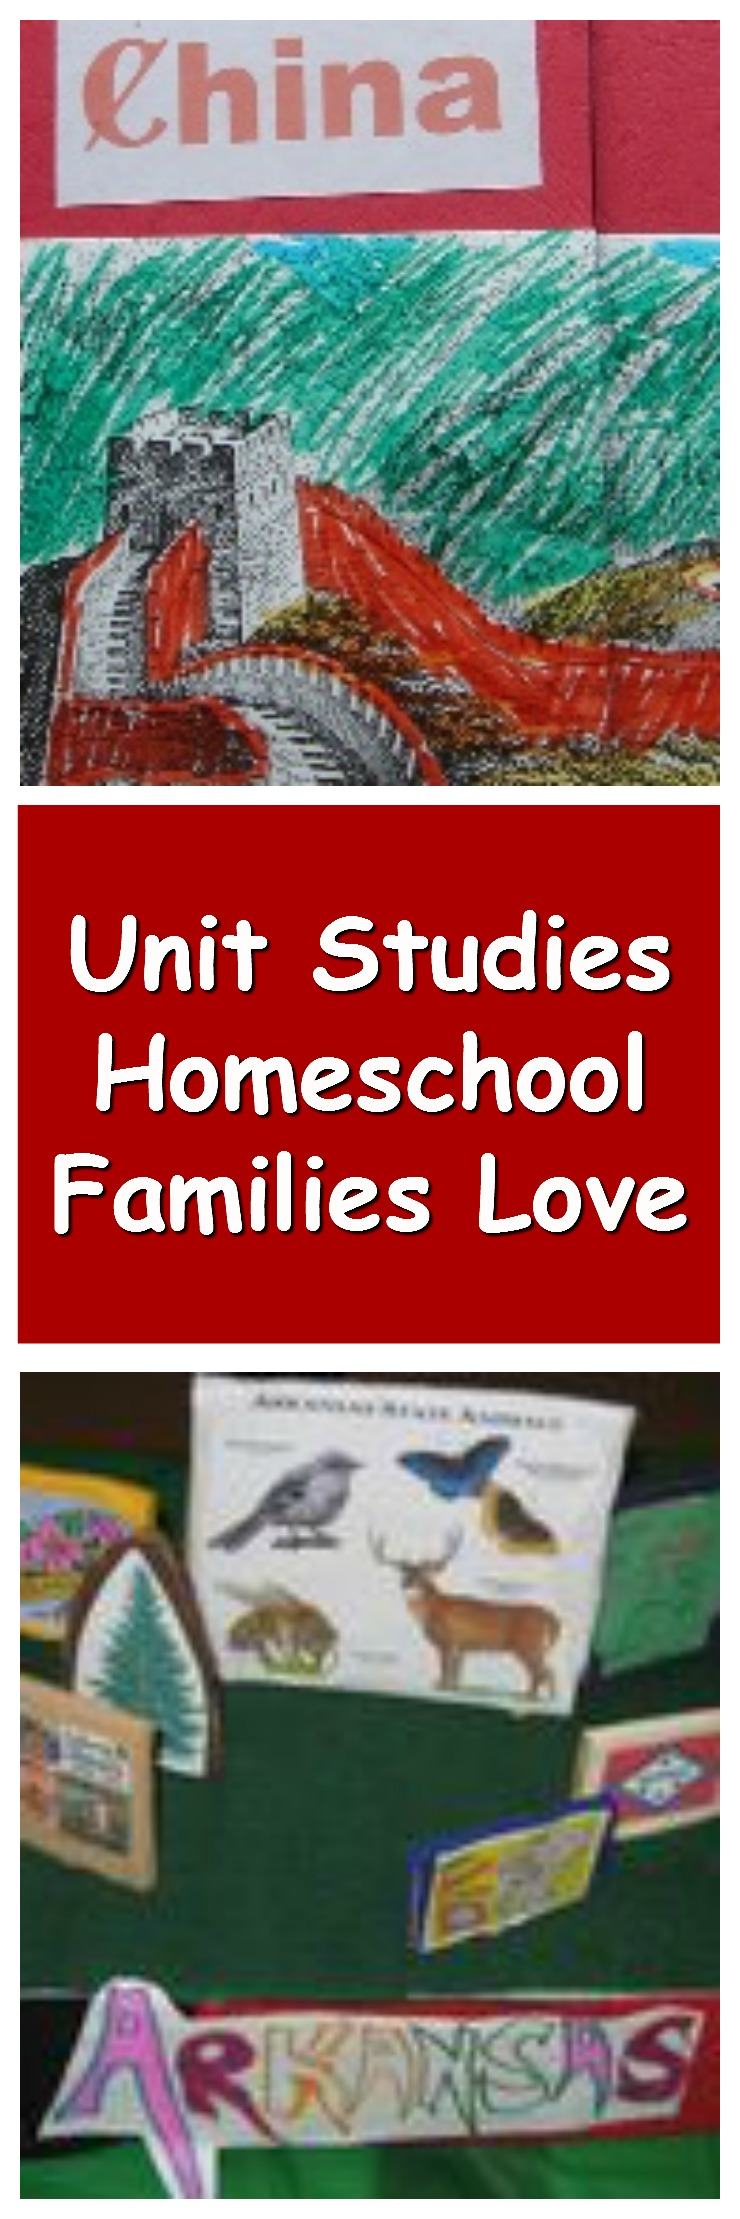 Unit Studies Homeschool Families Love